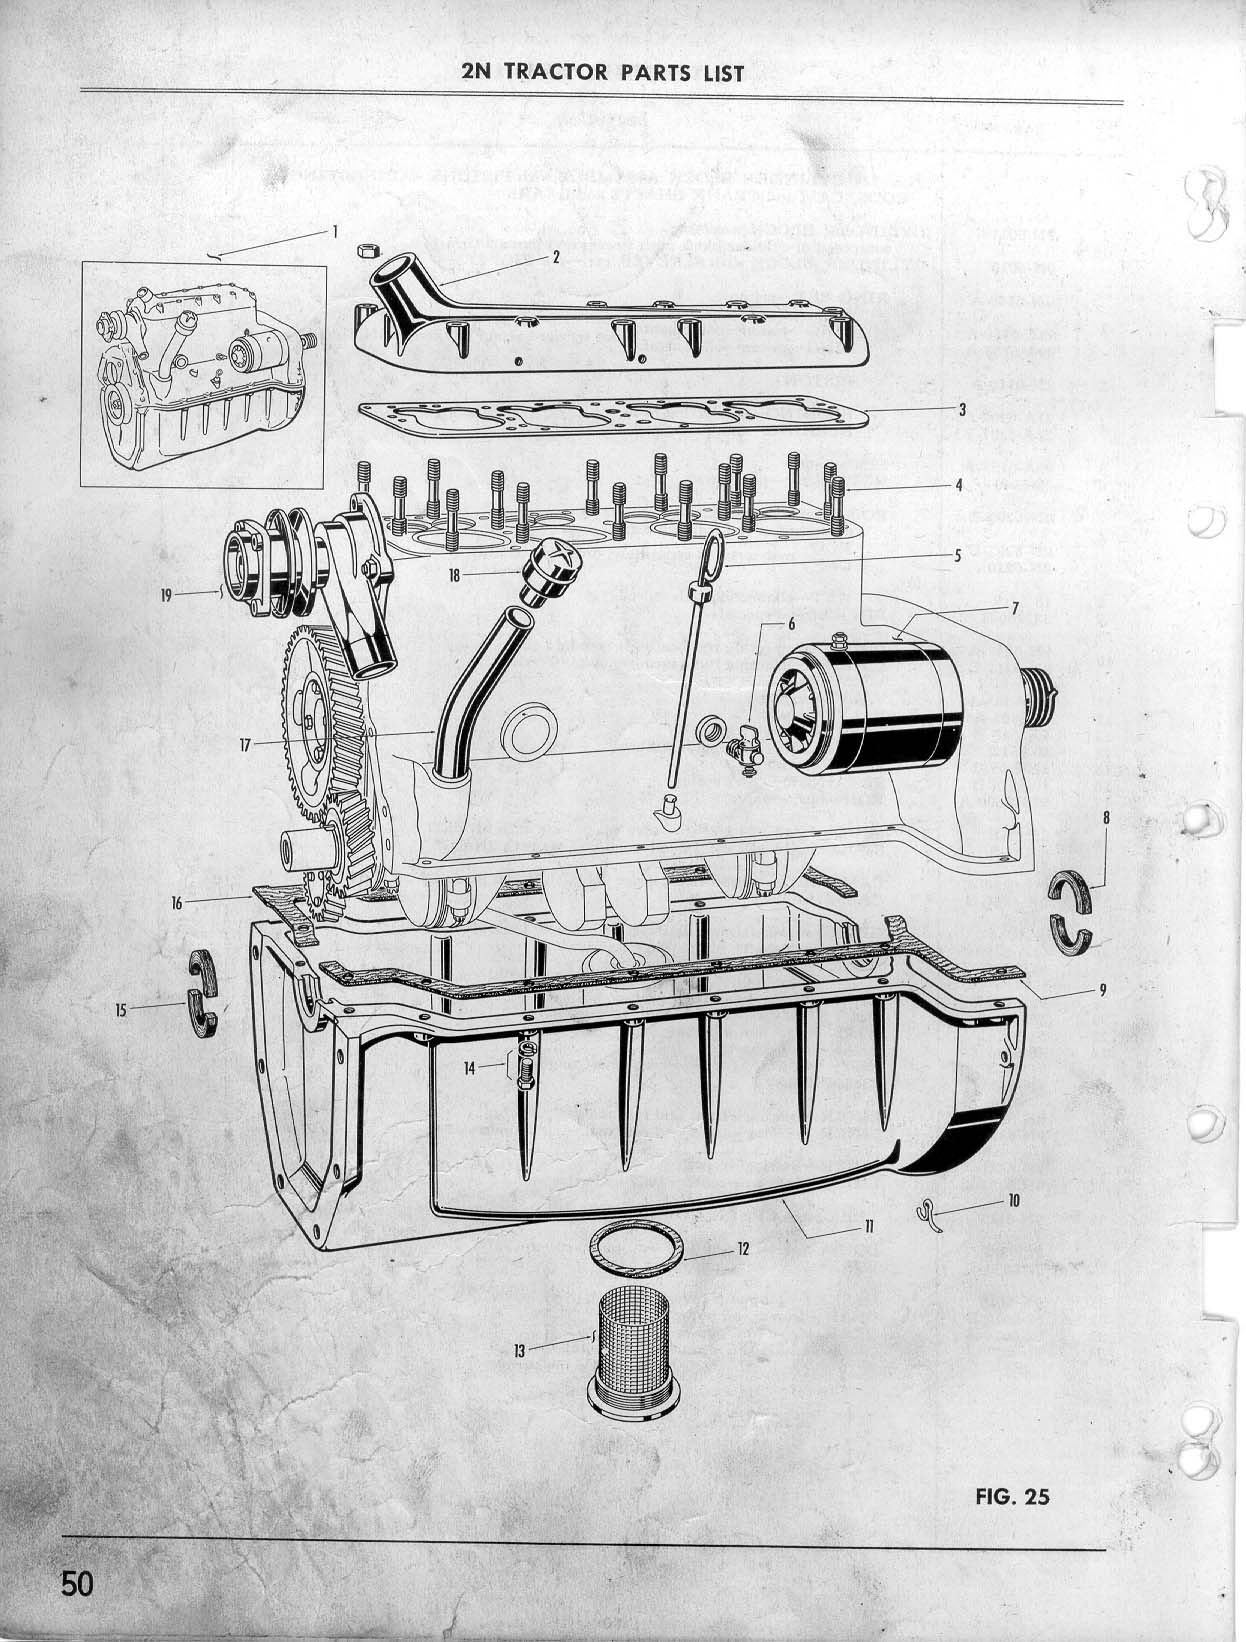 1952 8n Ford Tractor Wiring Diagram Library Old 800 Engine 31 Images